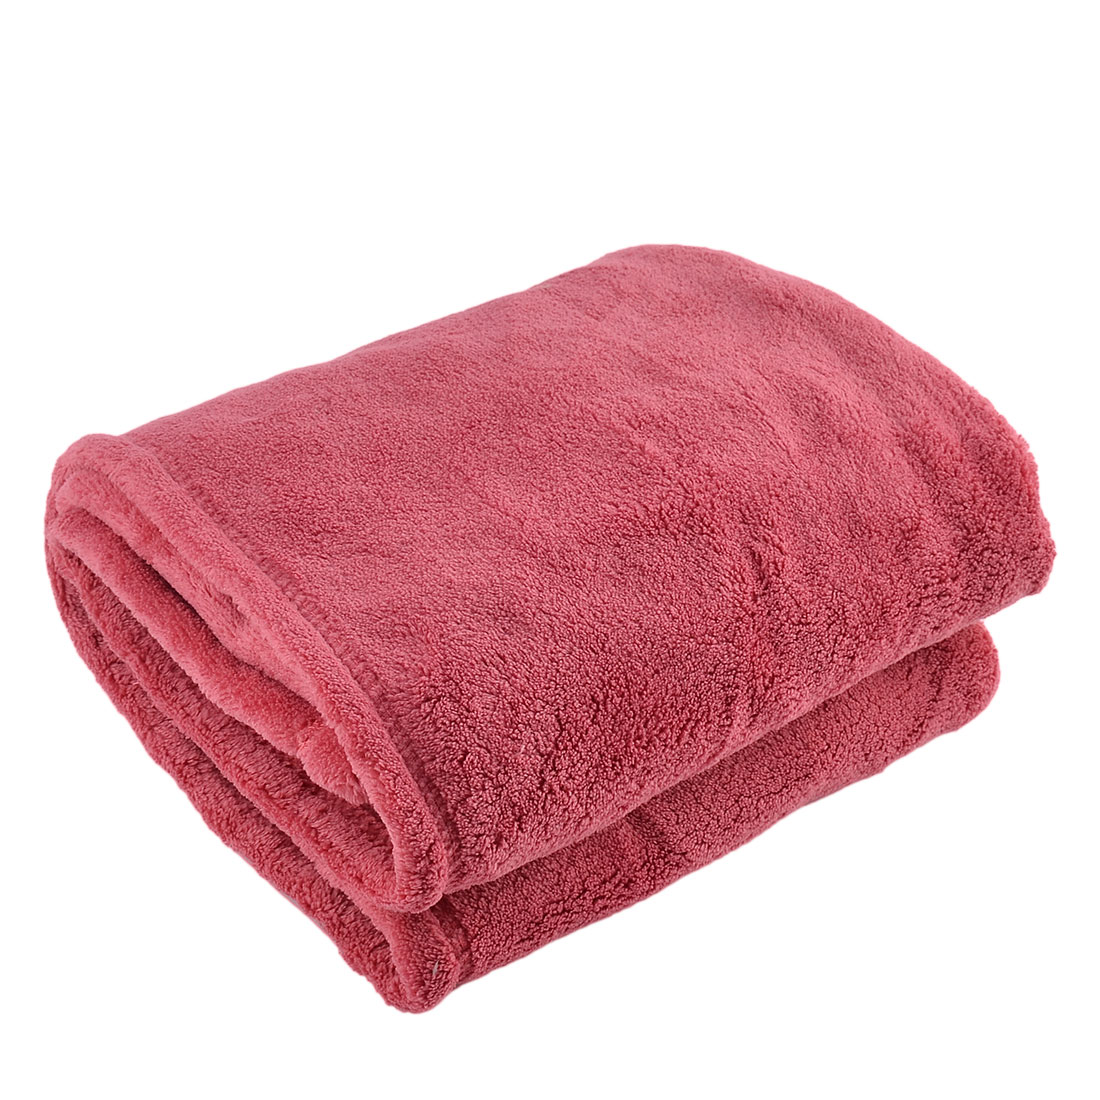 Home Bedroom Airplane Warm Soft Throw Pure Blanket Rug Plush Fleece Quilt Fuchsia